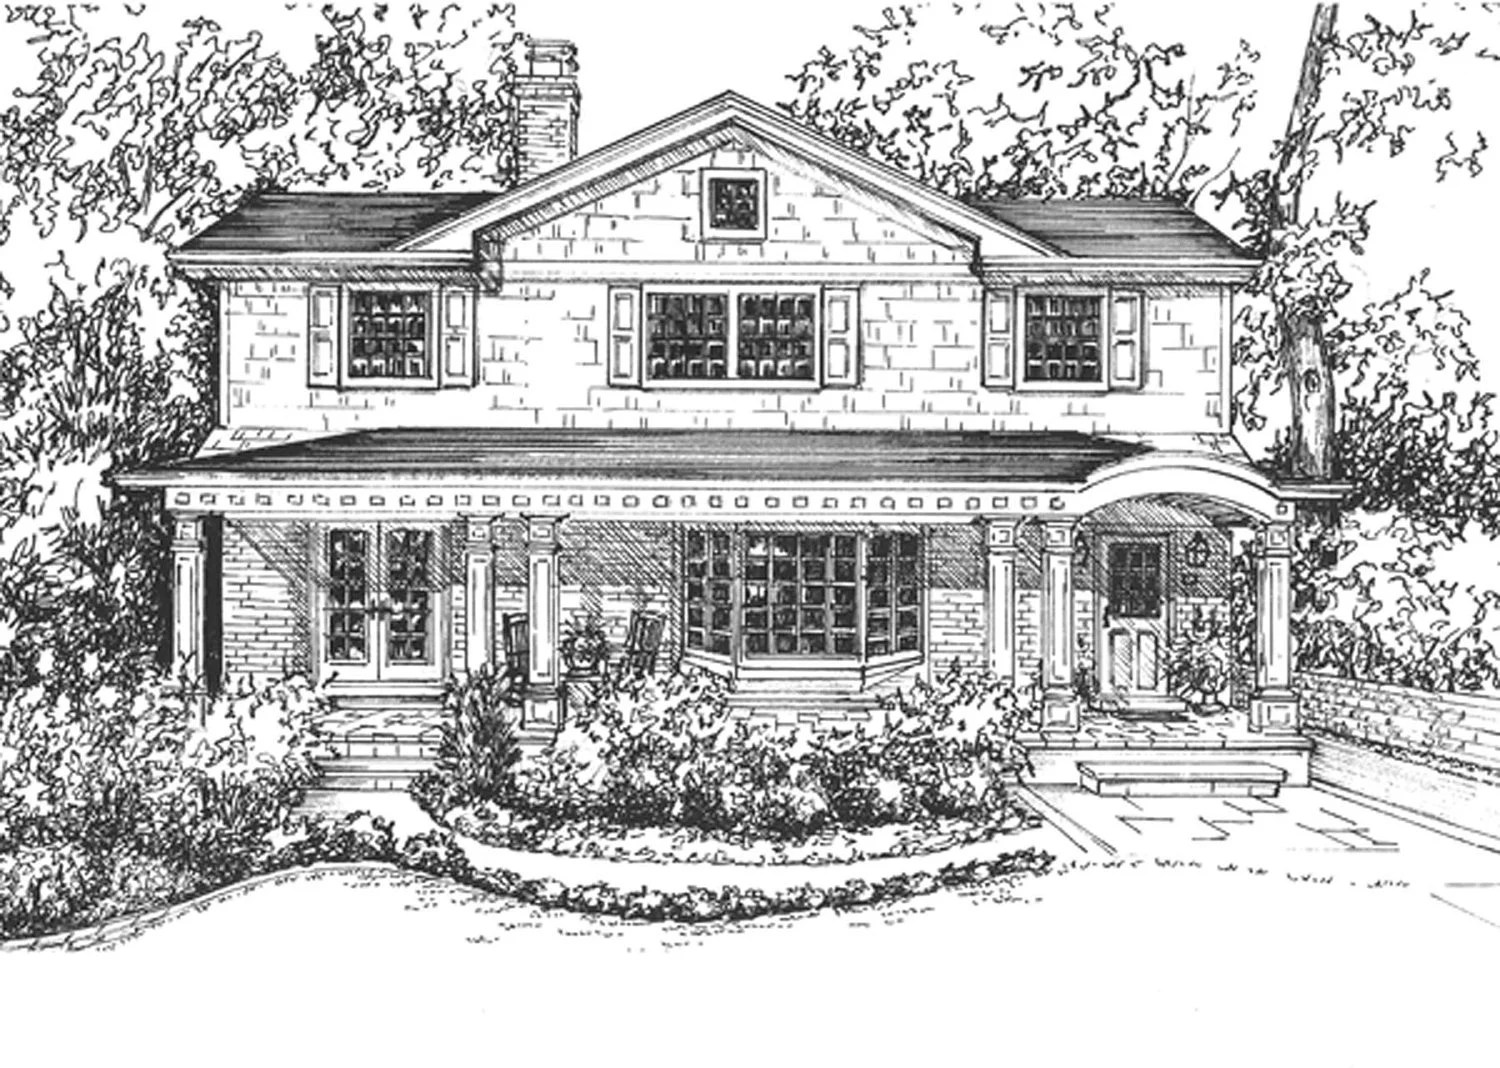 draw diagram for homes east coast swing steps house rendering hand drawn in ink home custom